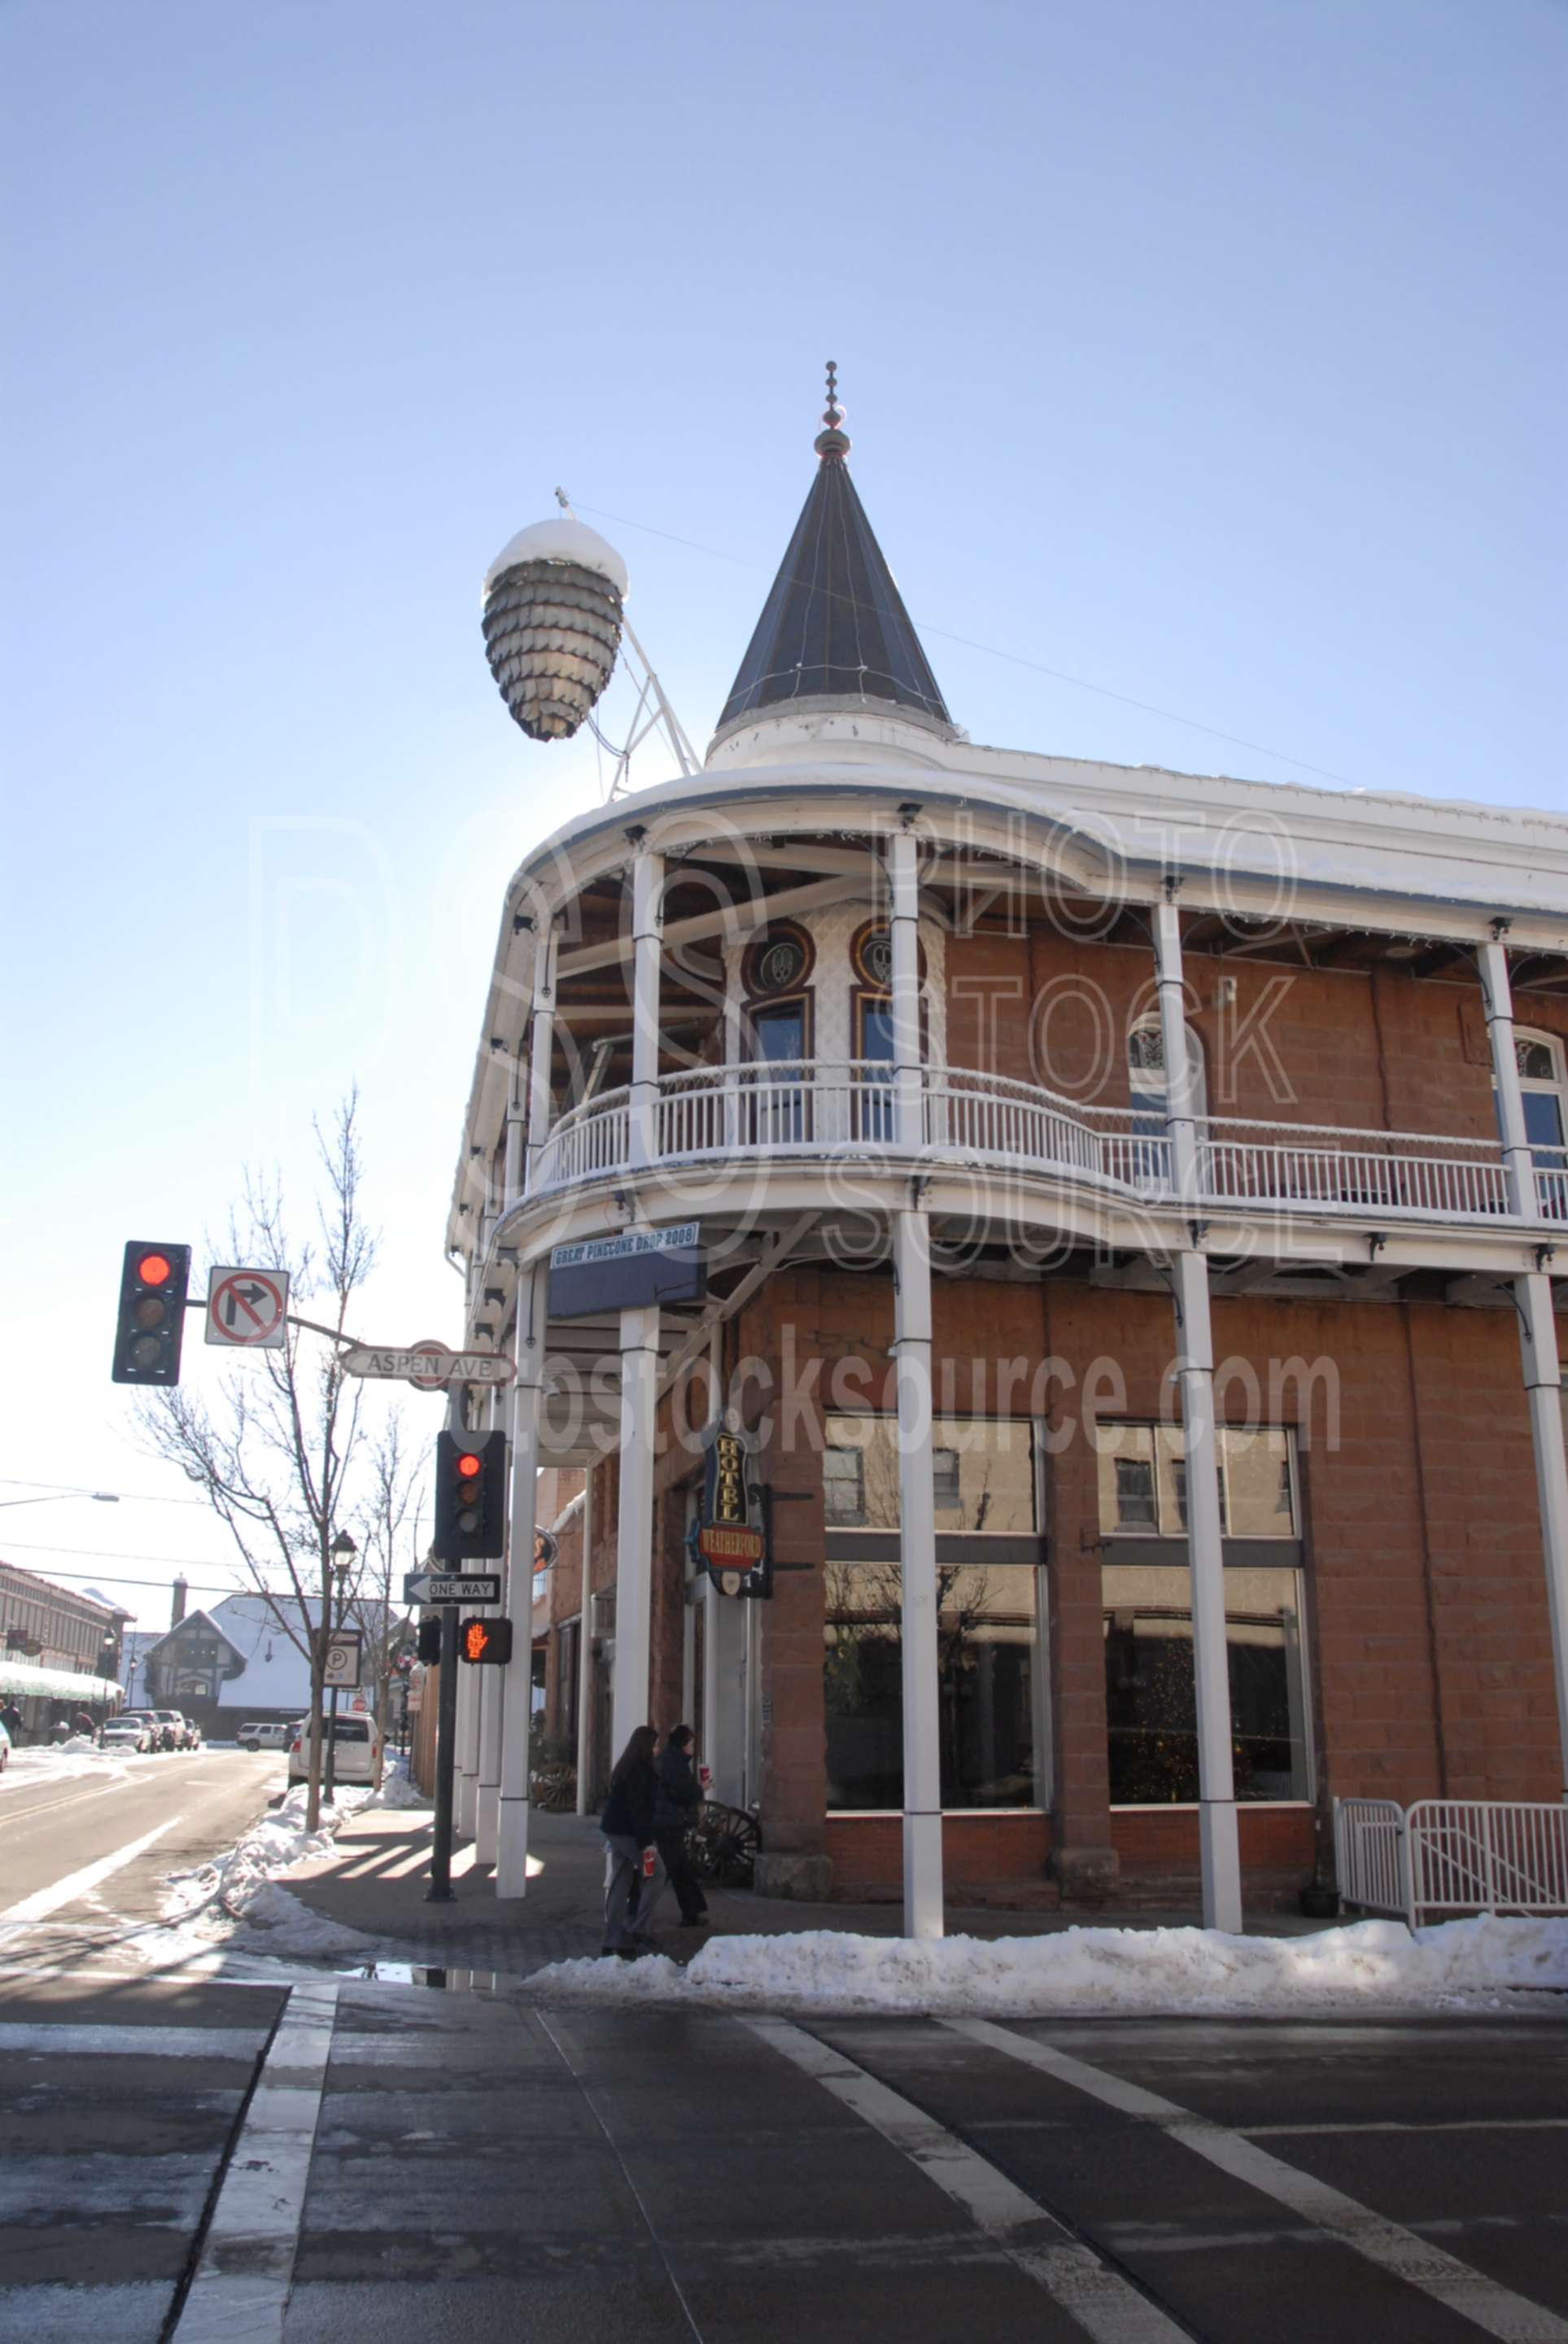 Photo of Weatherford Hotel by Photo Stock Source building